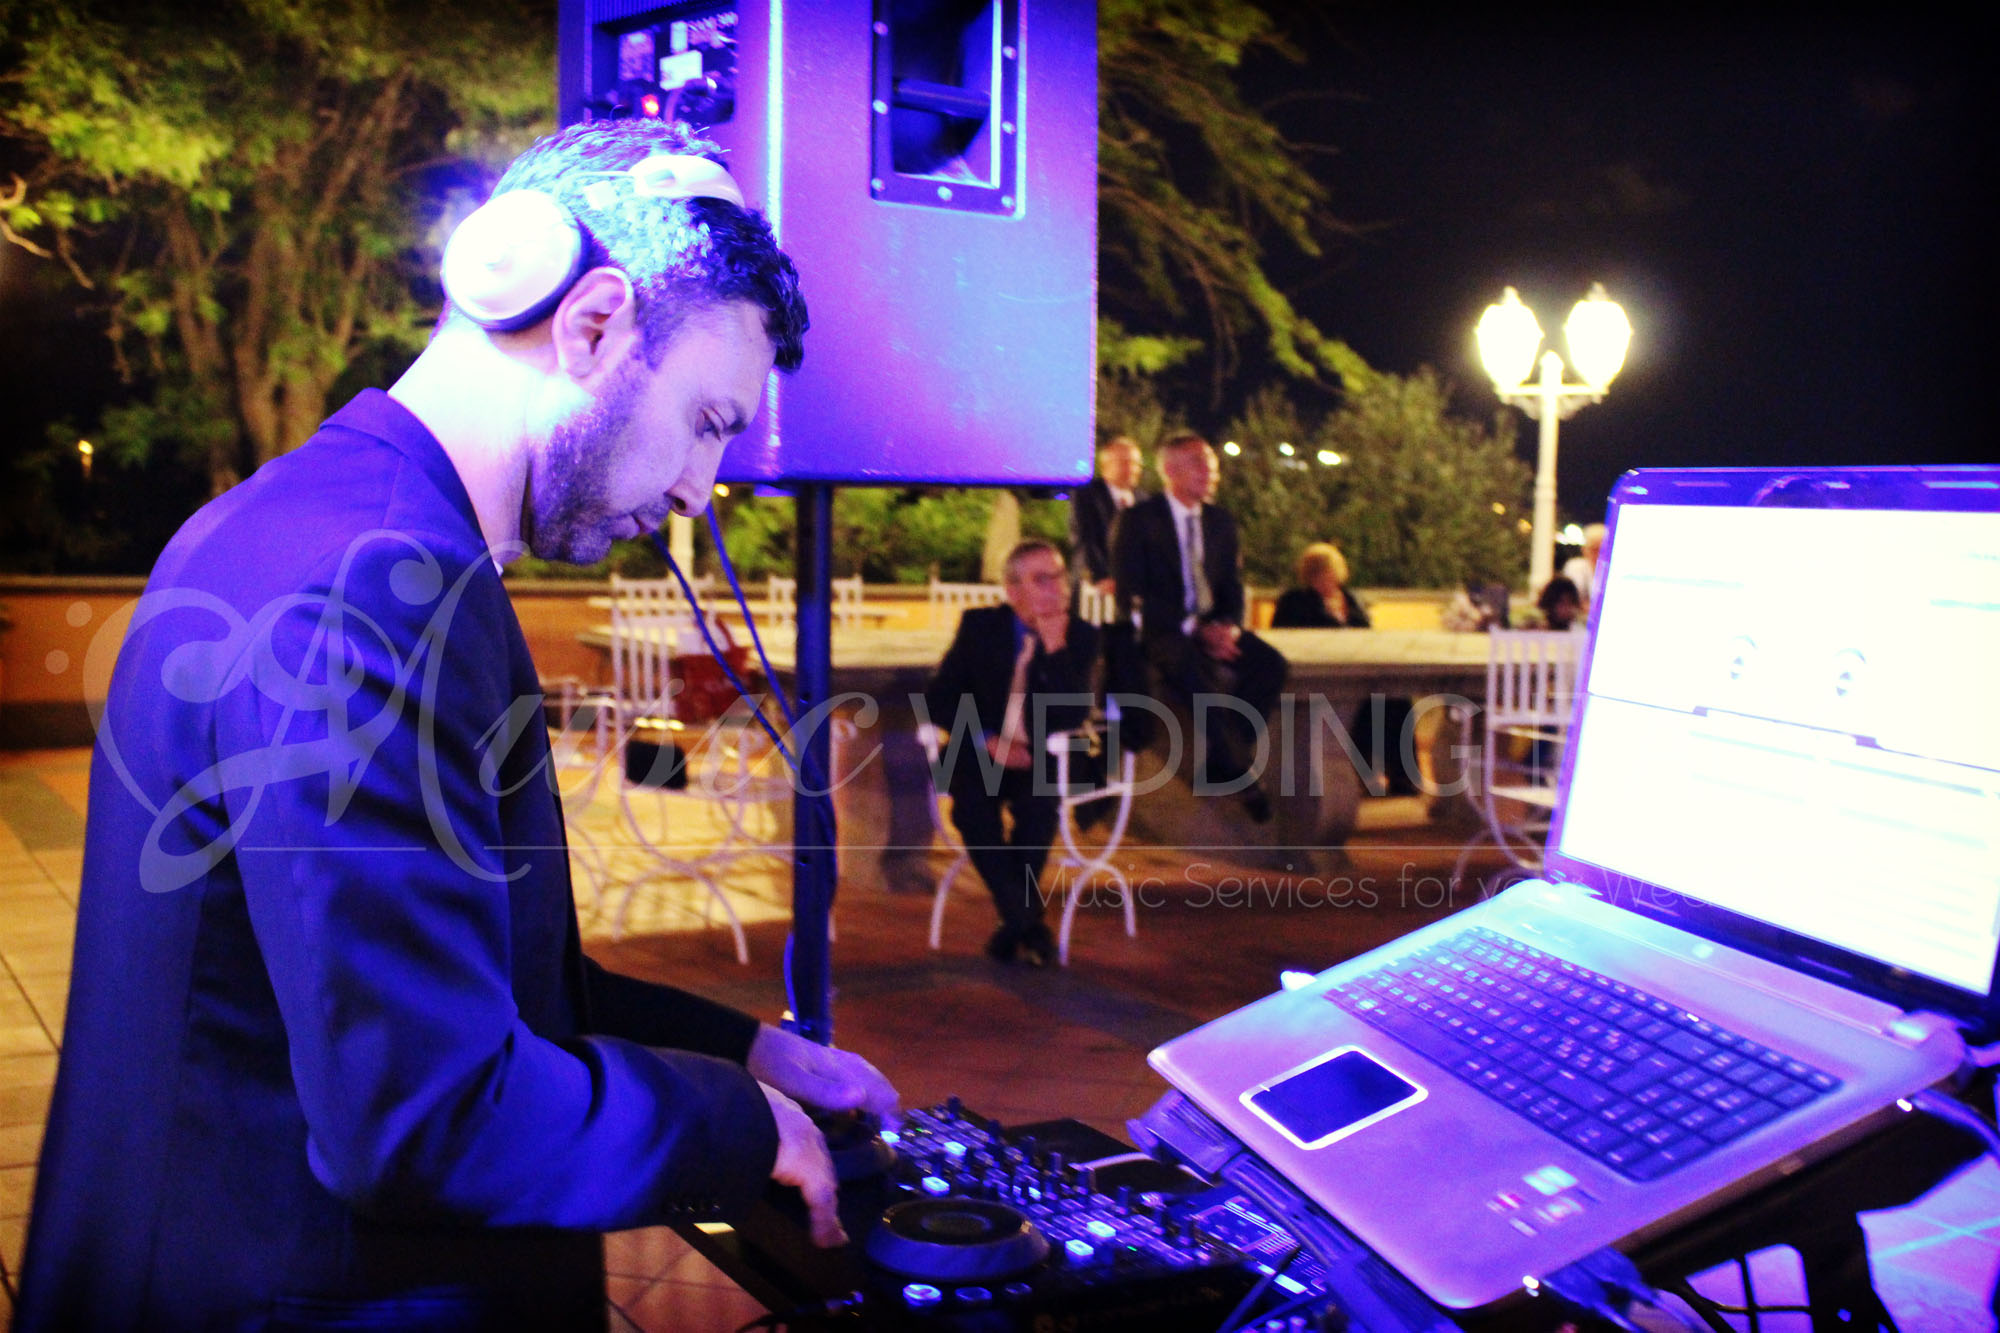 Dj da matrimonio a Roma Italia - Wedding dj party - wedding music